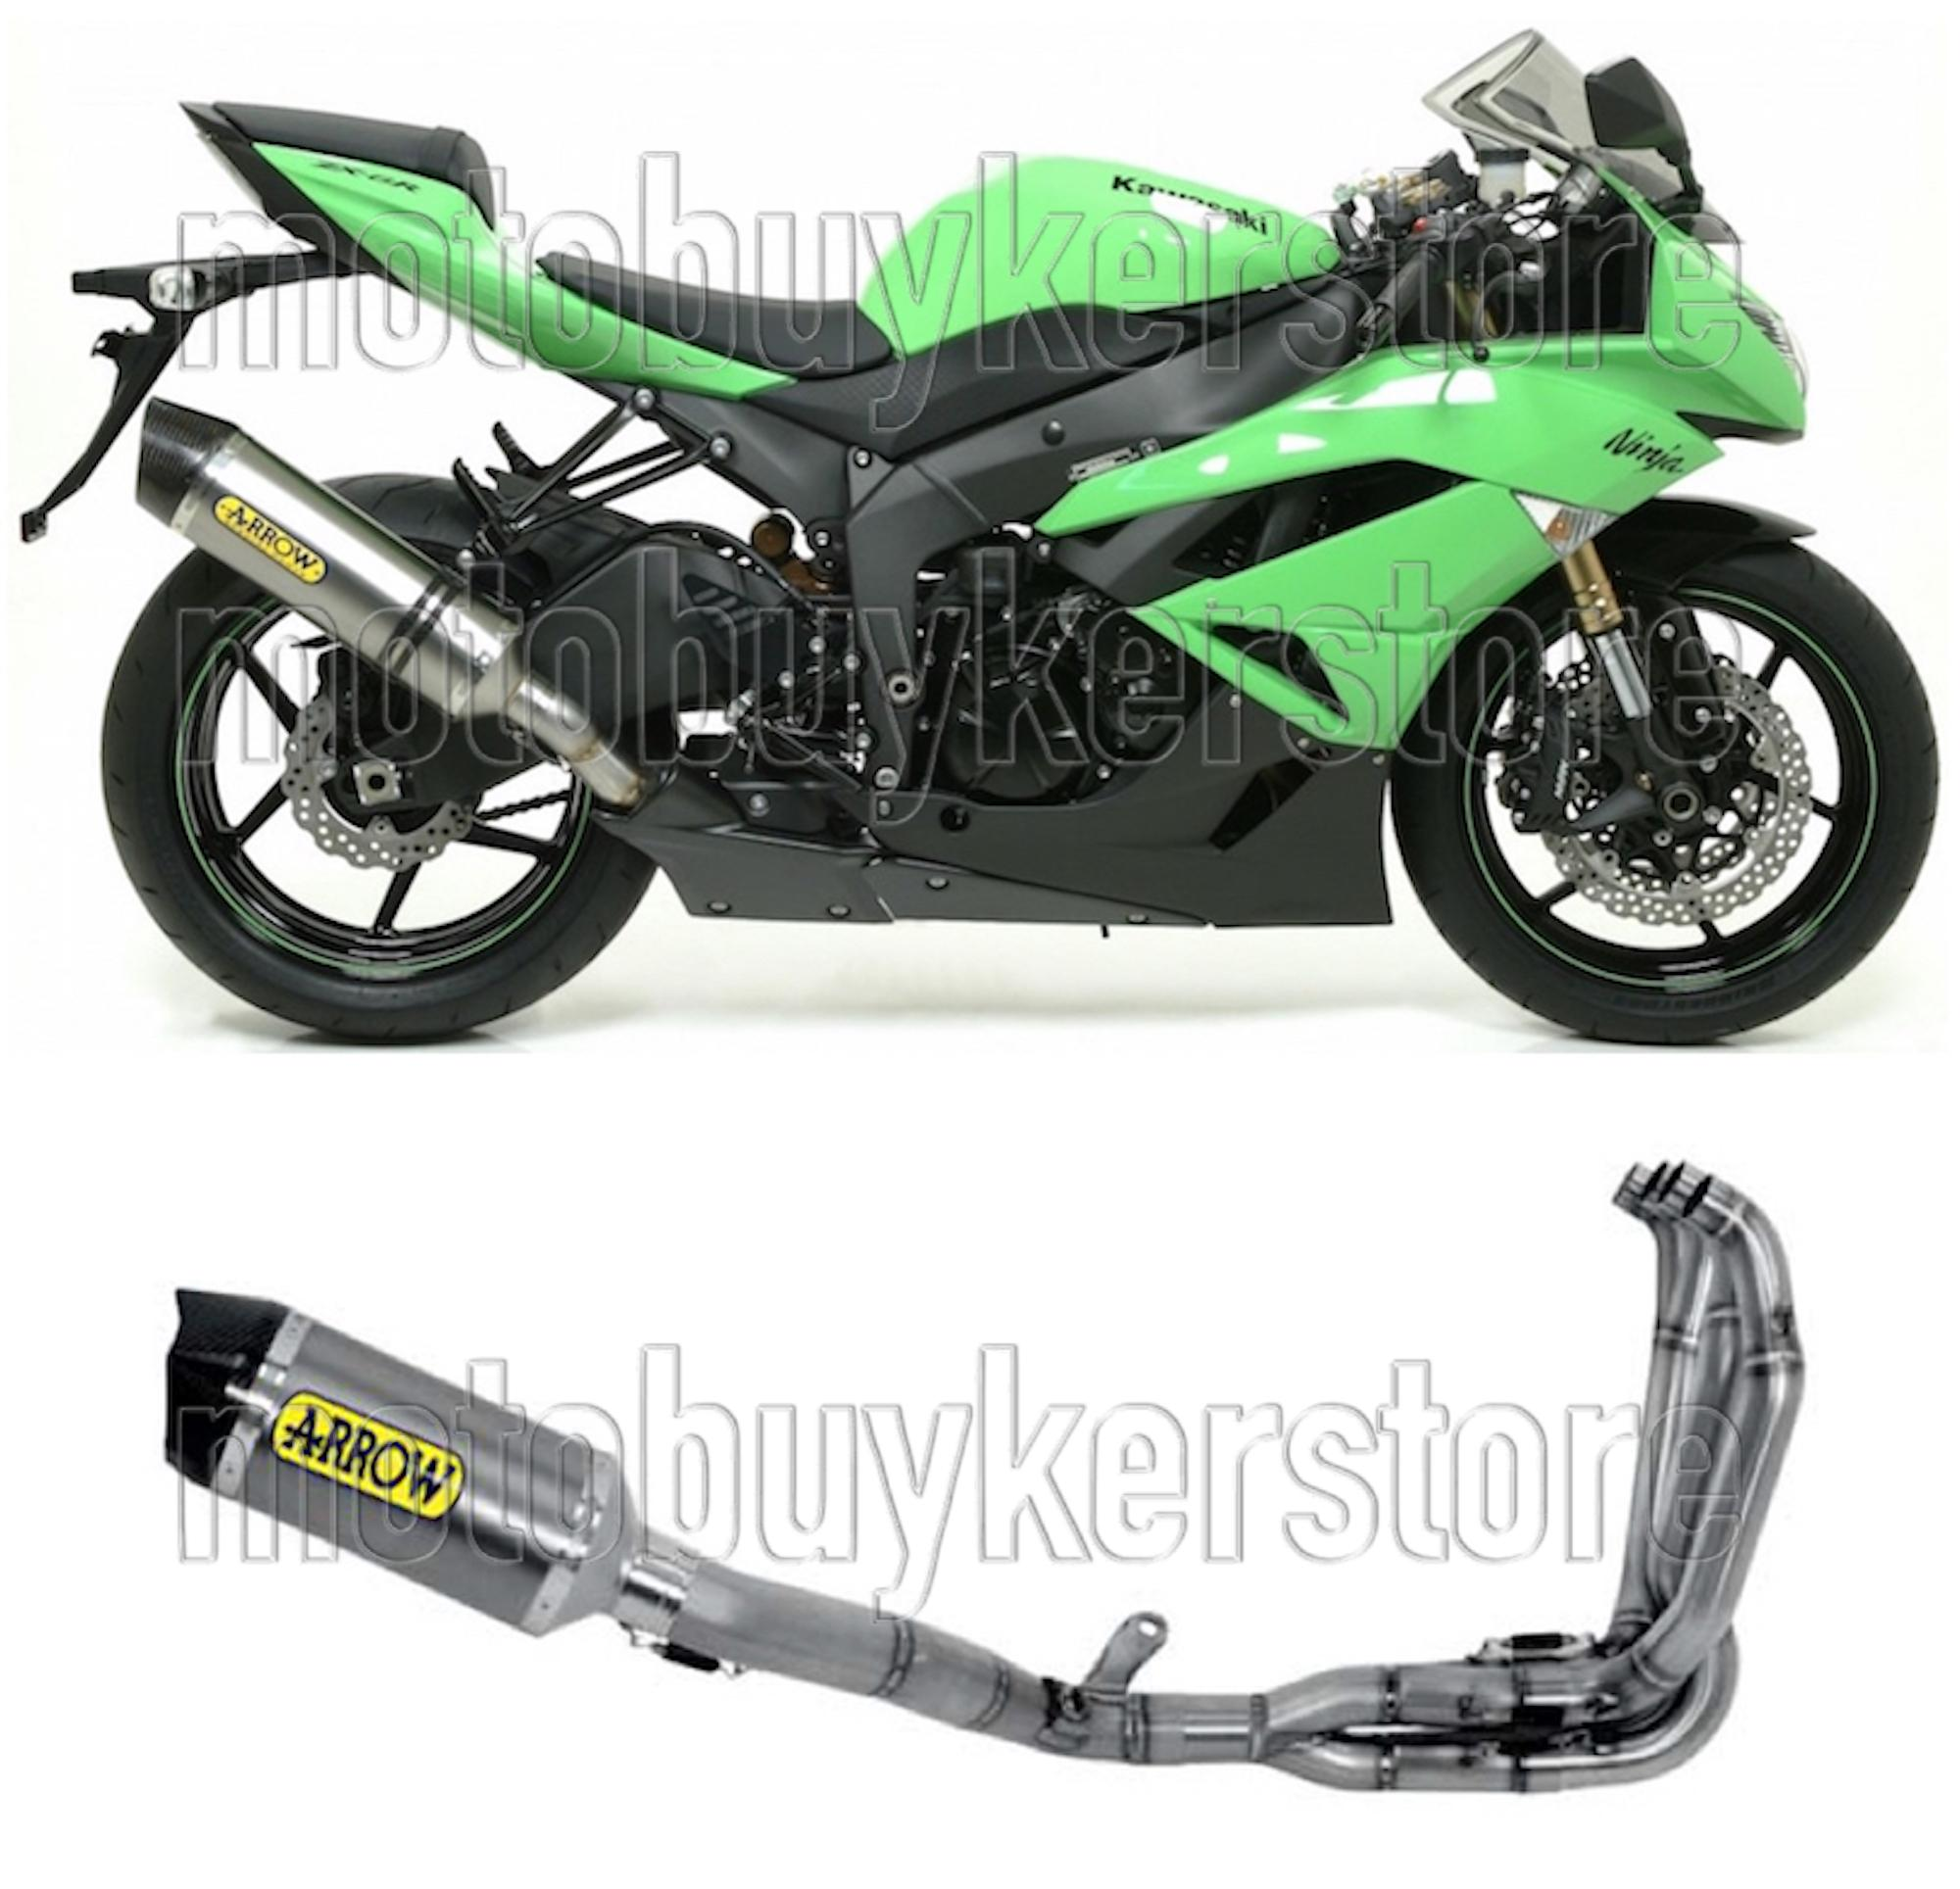 POT COMPLETE COMPETITION EVO 71132CKR ARROW POUR KAWASAKI ZX-6R 2009 09 2010 10